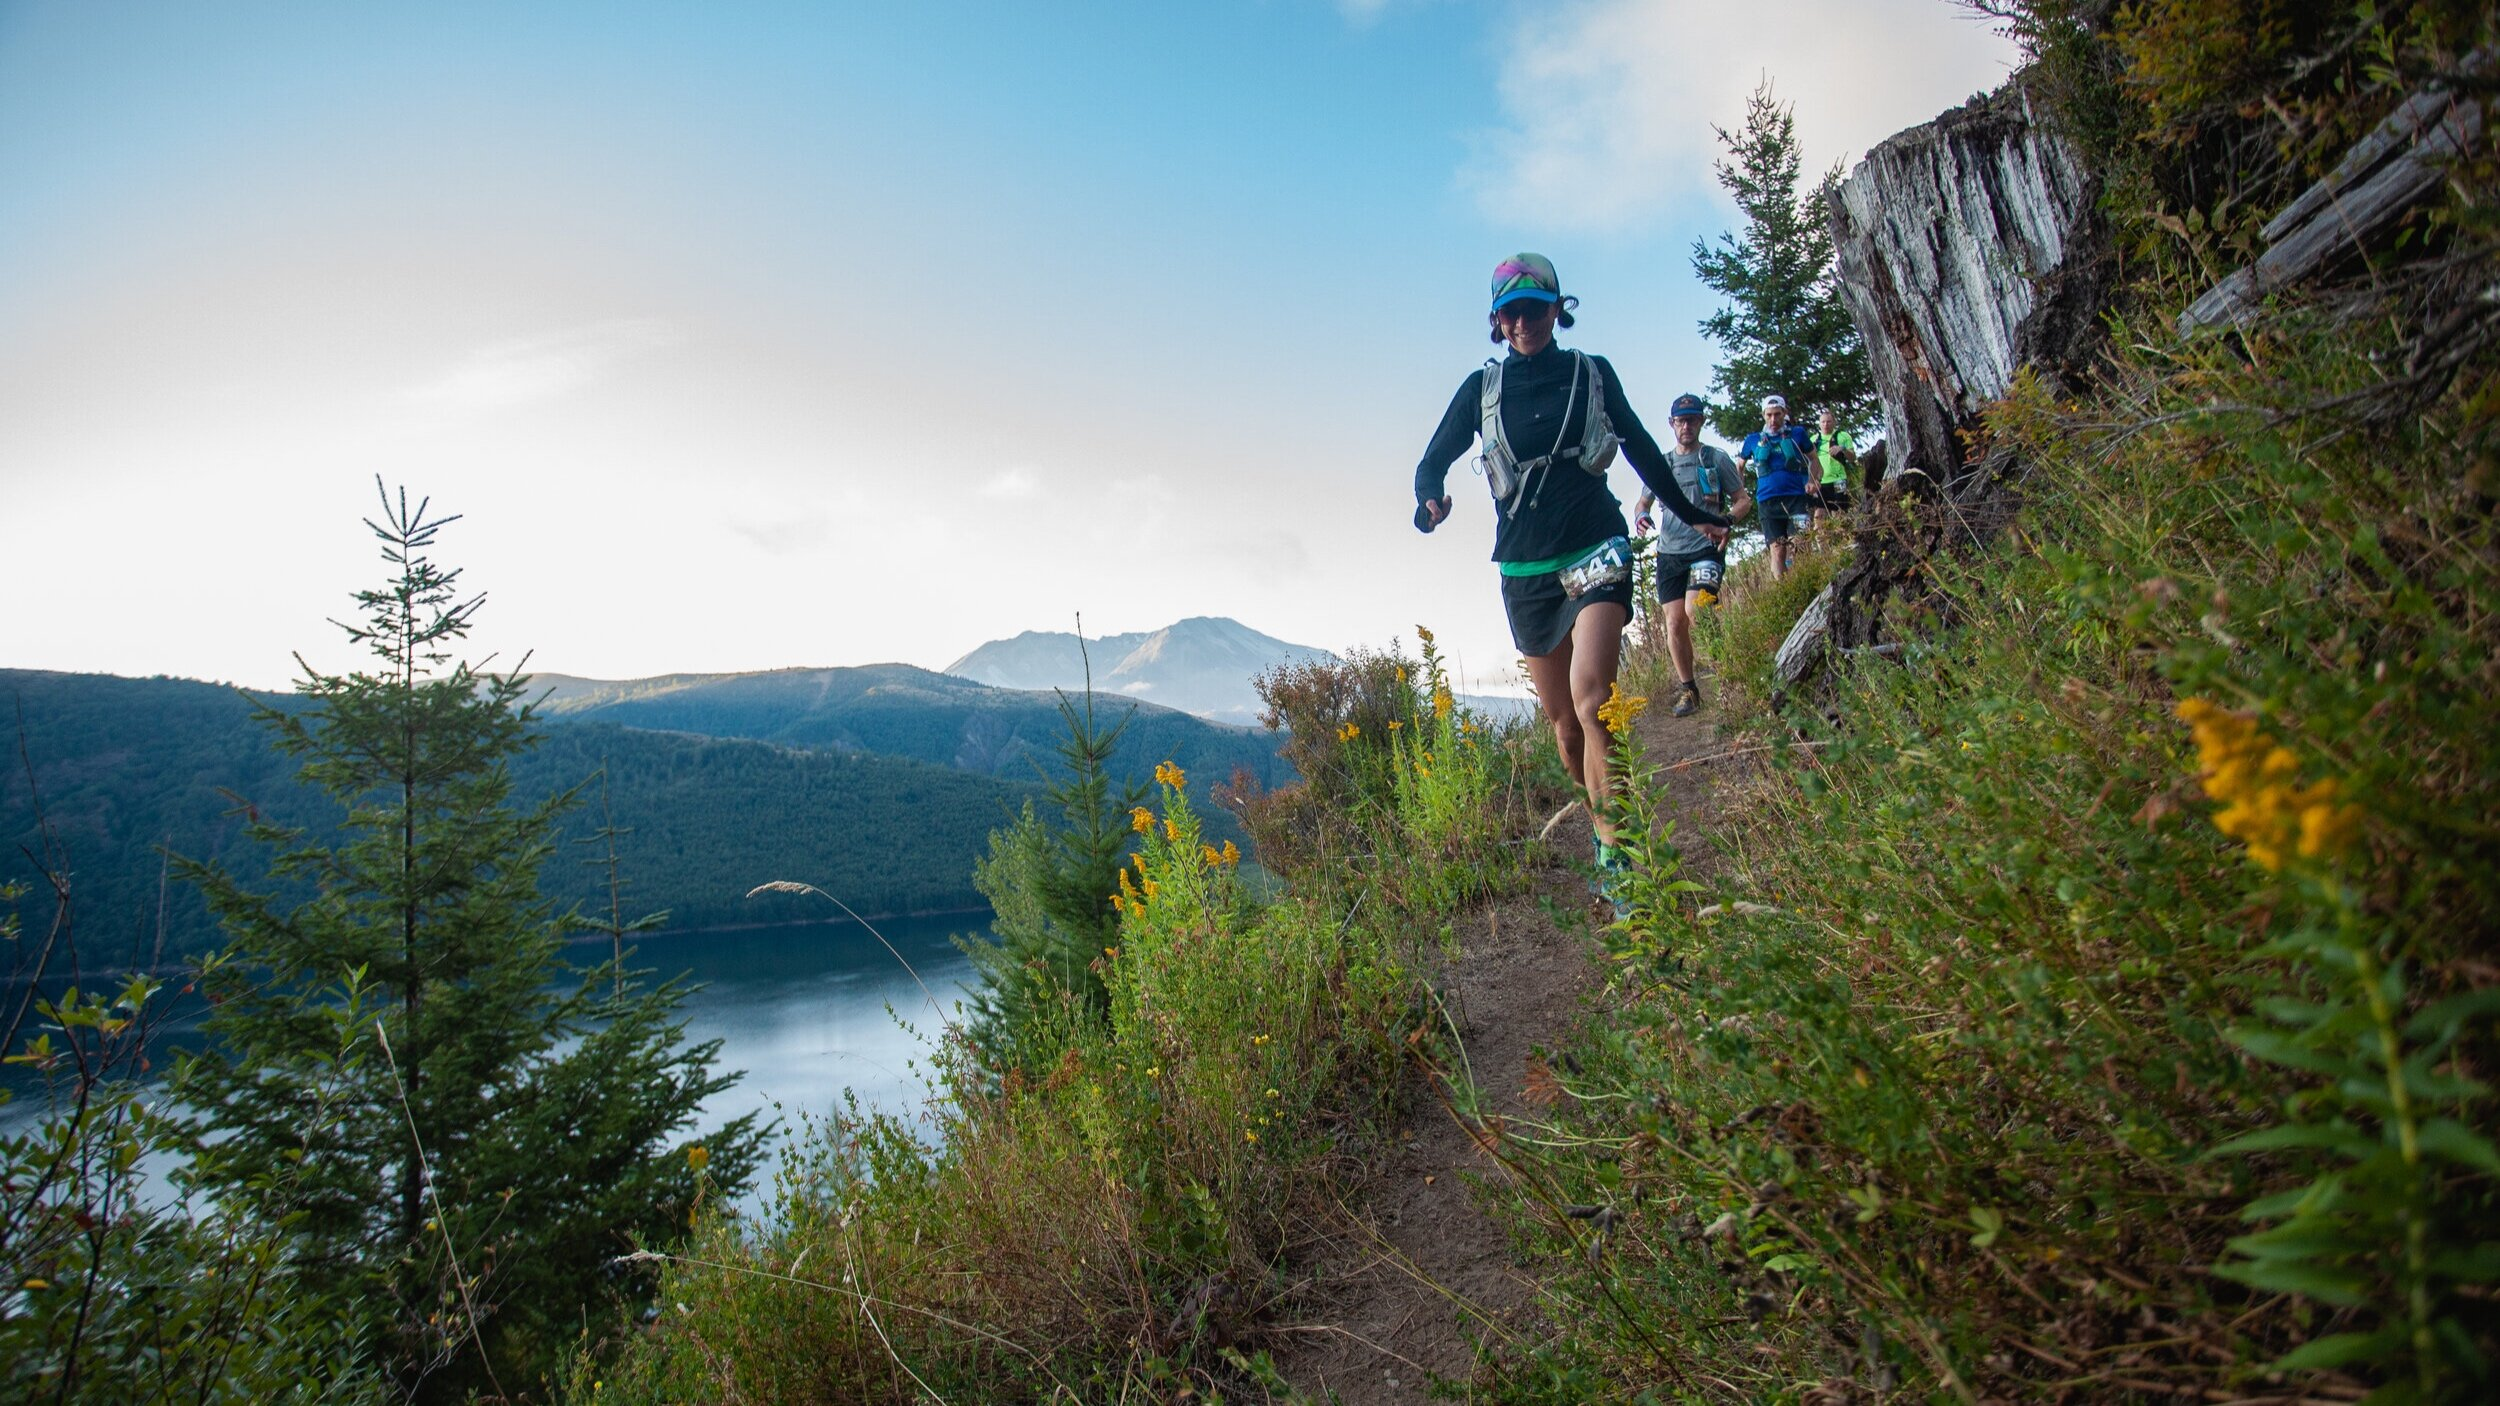 BACKCOUNTRY RISEhalf marathon - August 29, 2020